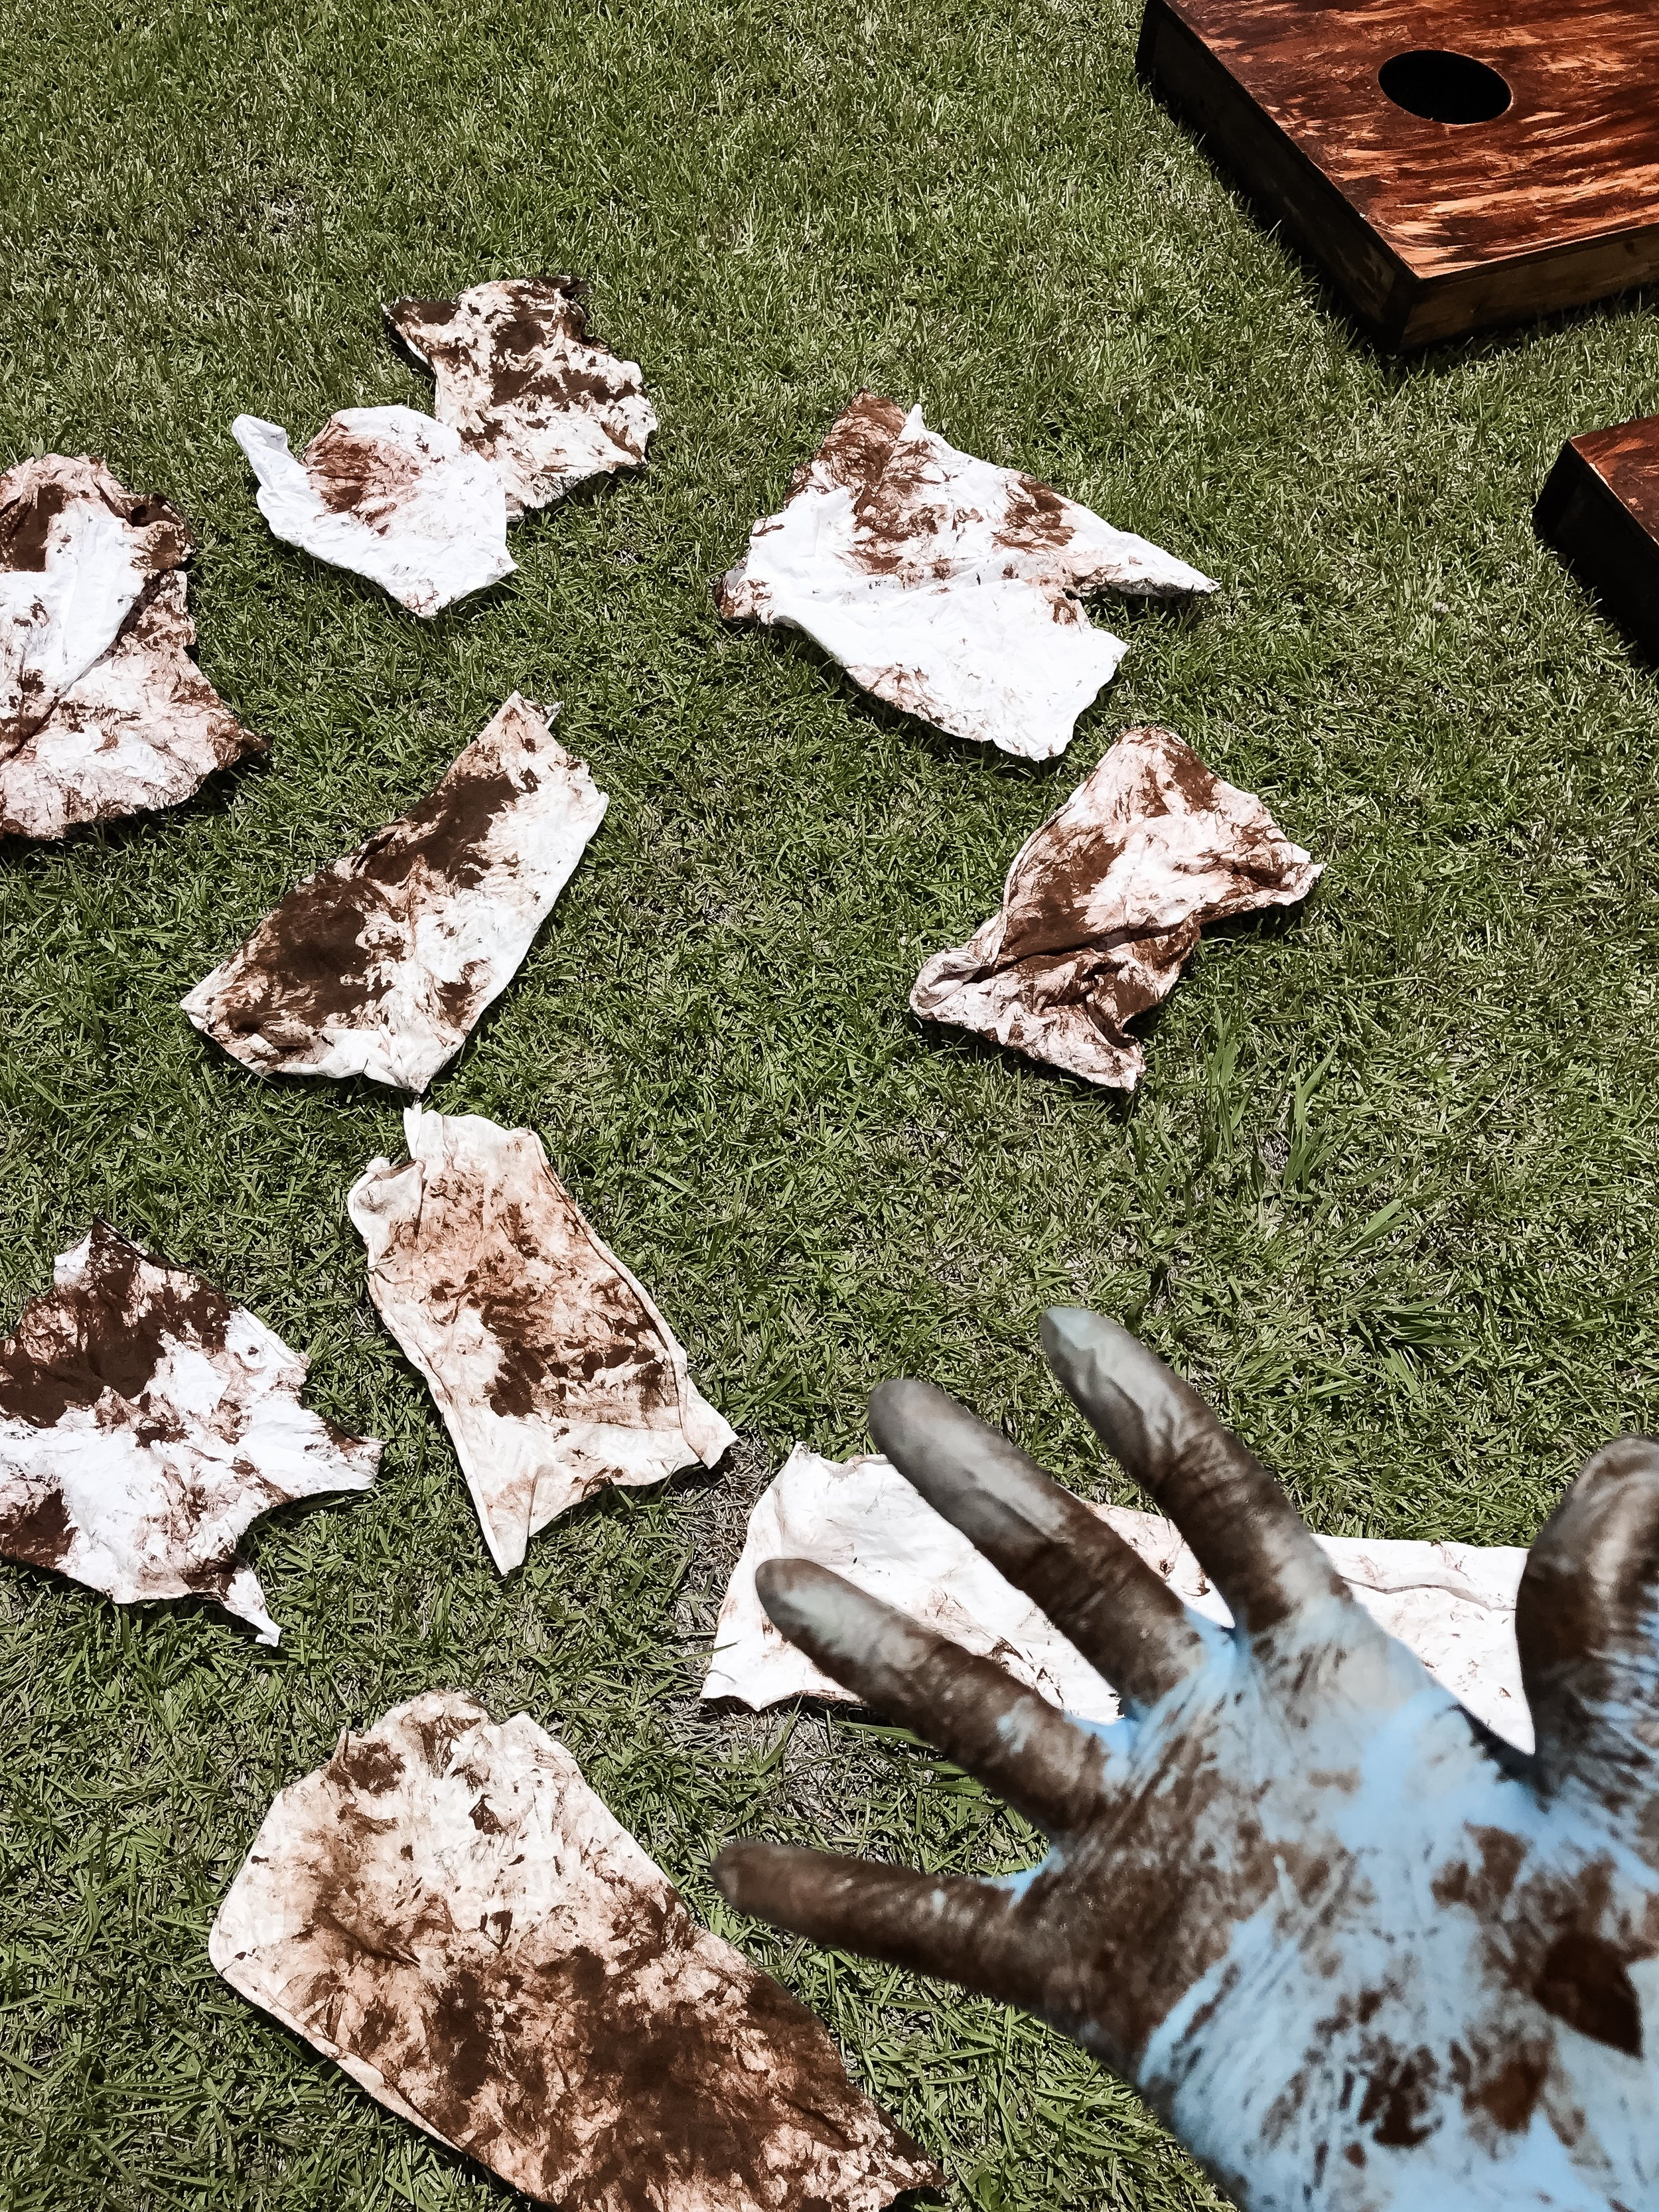 WARNING: spread used cloths out to dry in the sun. DO NOT ball them up throw away. The chemicals in the stain can combust when stored that way.